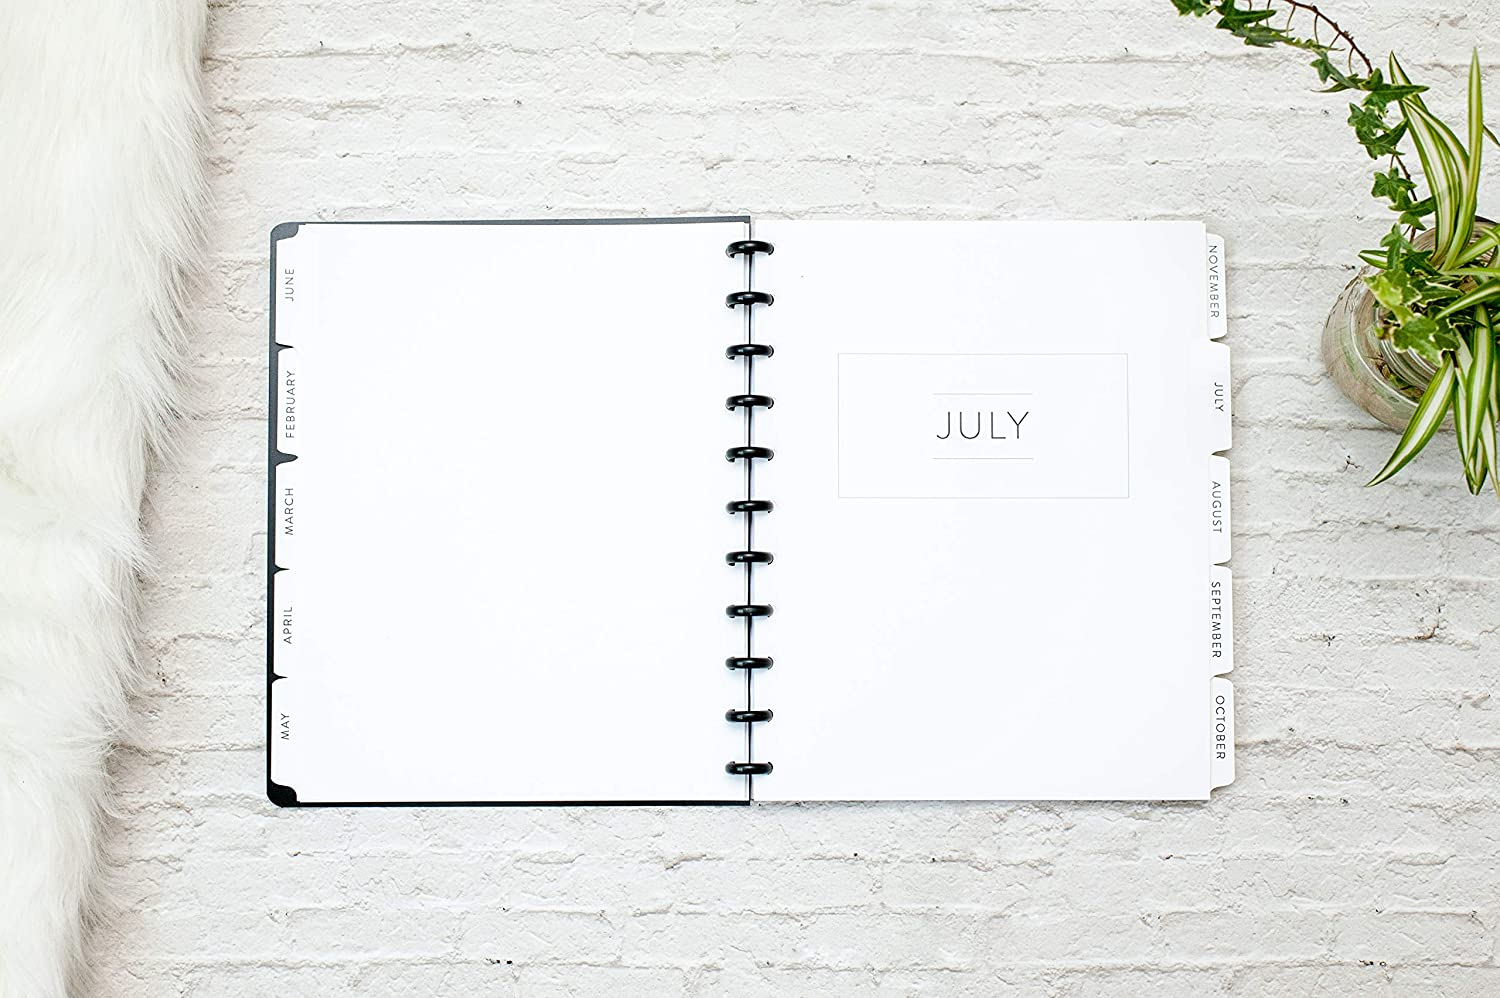 Dividers for Letter Size Discbound Planners, fits 11-Disc Calendar Notebook, Fits Levenger Circa, Arc by Staples, TUL by Office Depot, 8.5